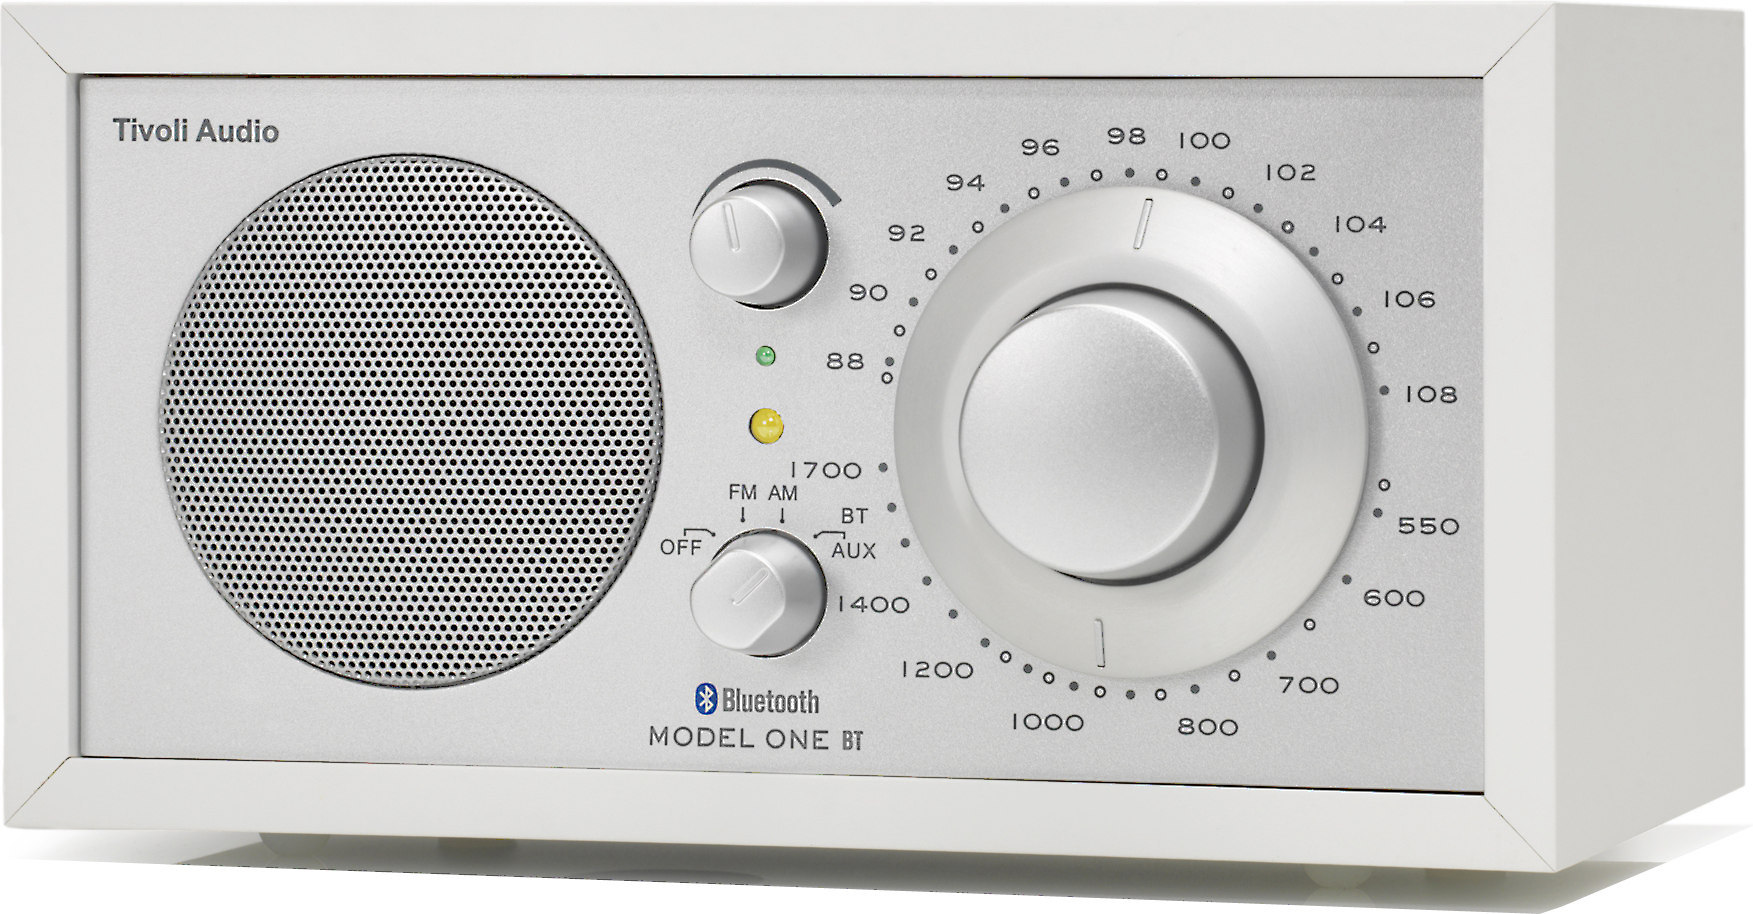 Tivoli Audio Model One Alternative Tivoli Audio Model One Bt White Silver